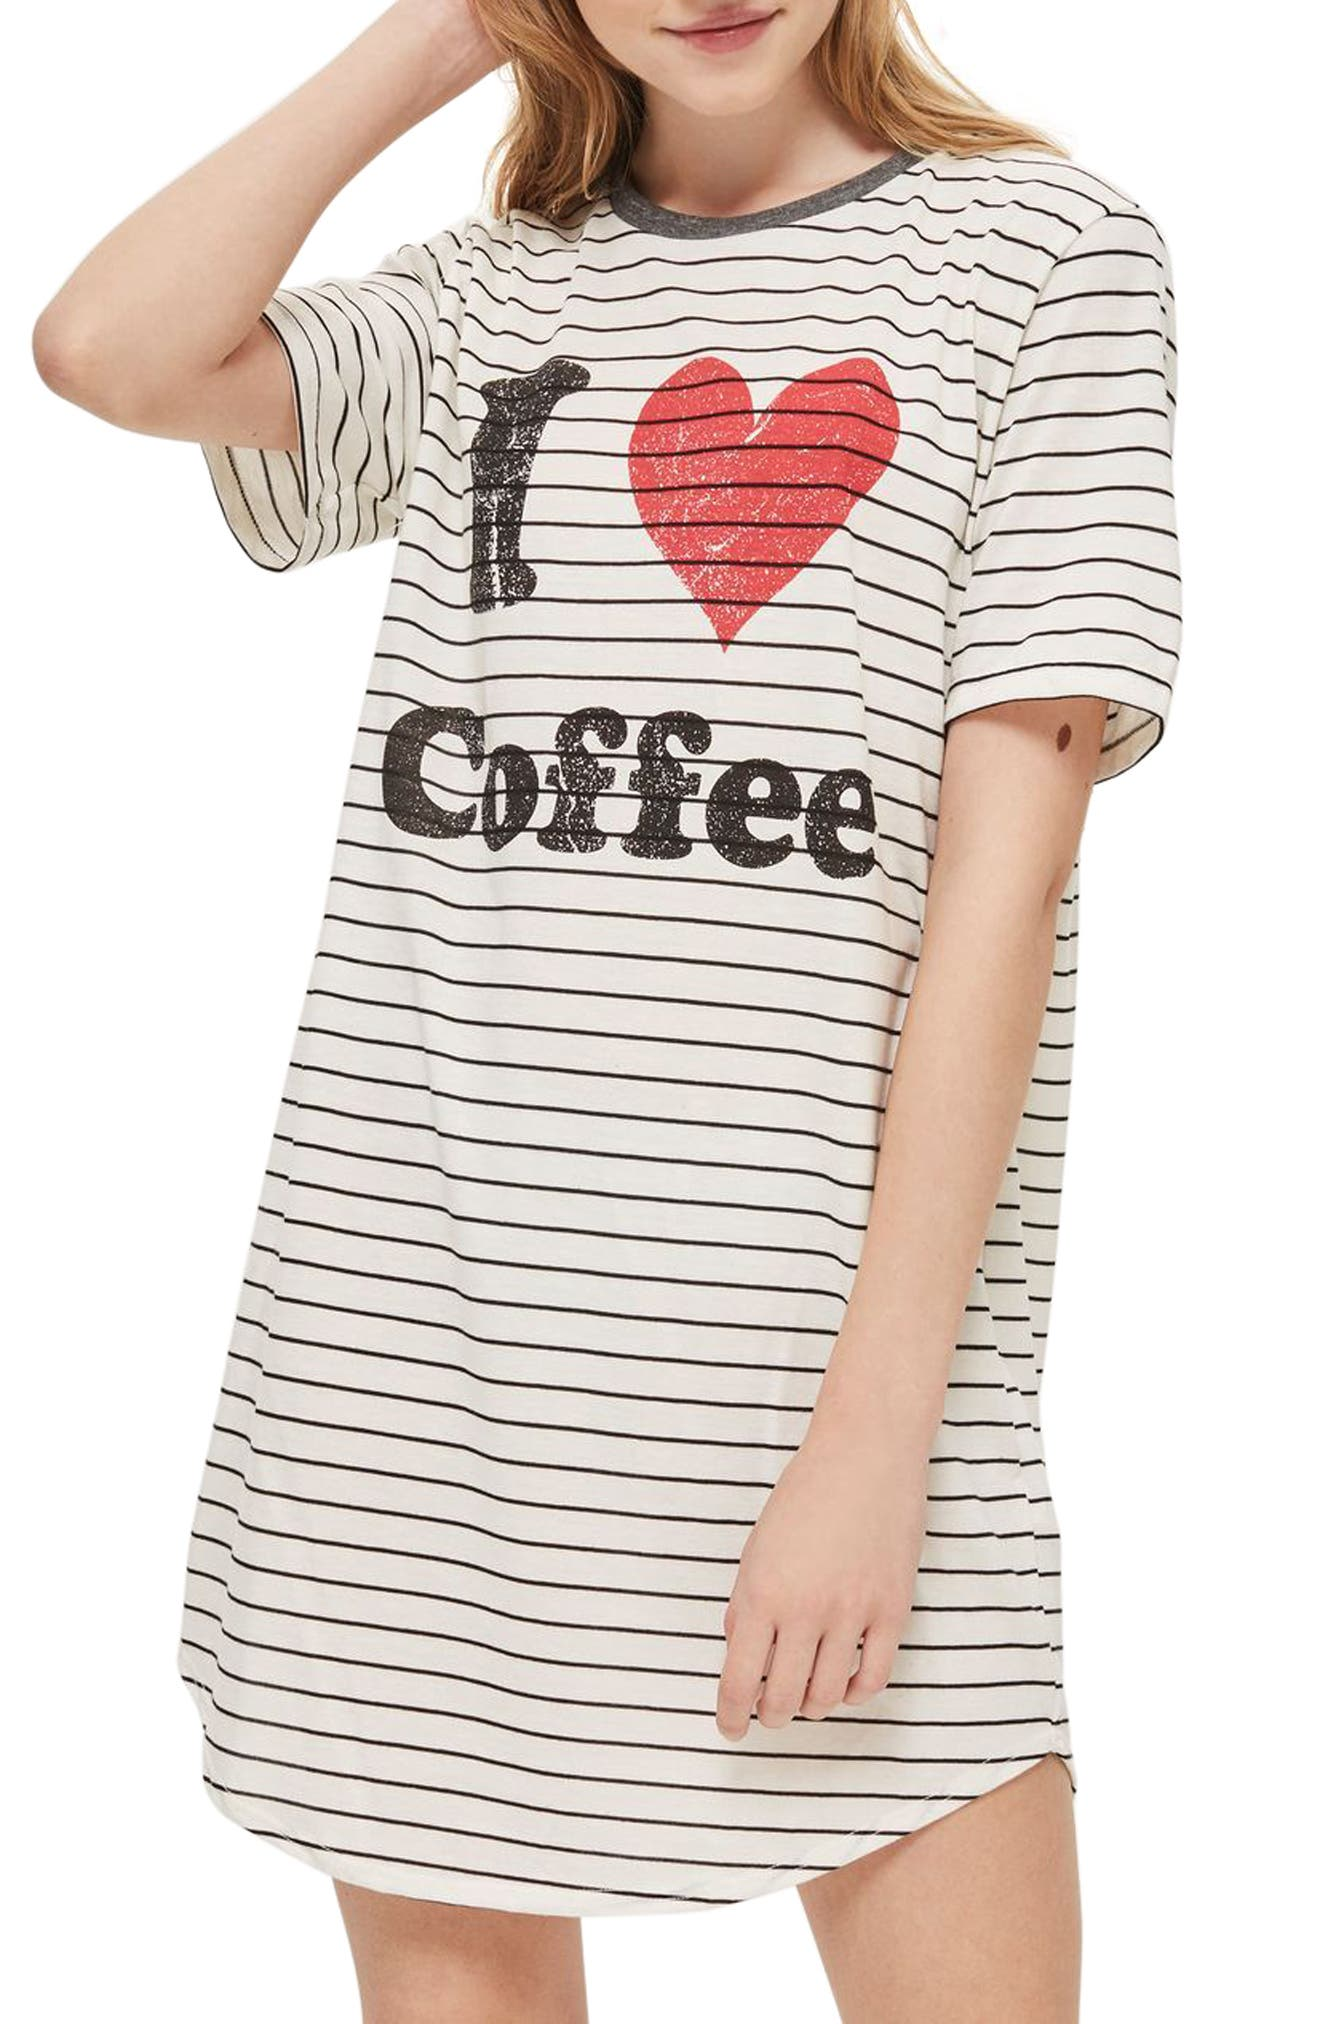 Topshop I Love Coffee Sleep T-Shirt Dress